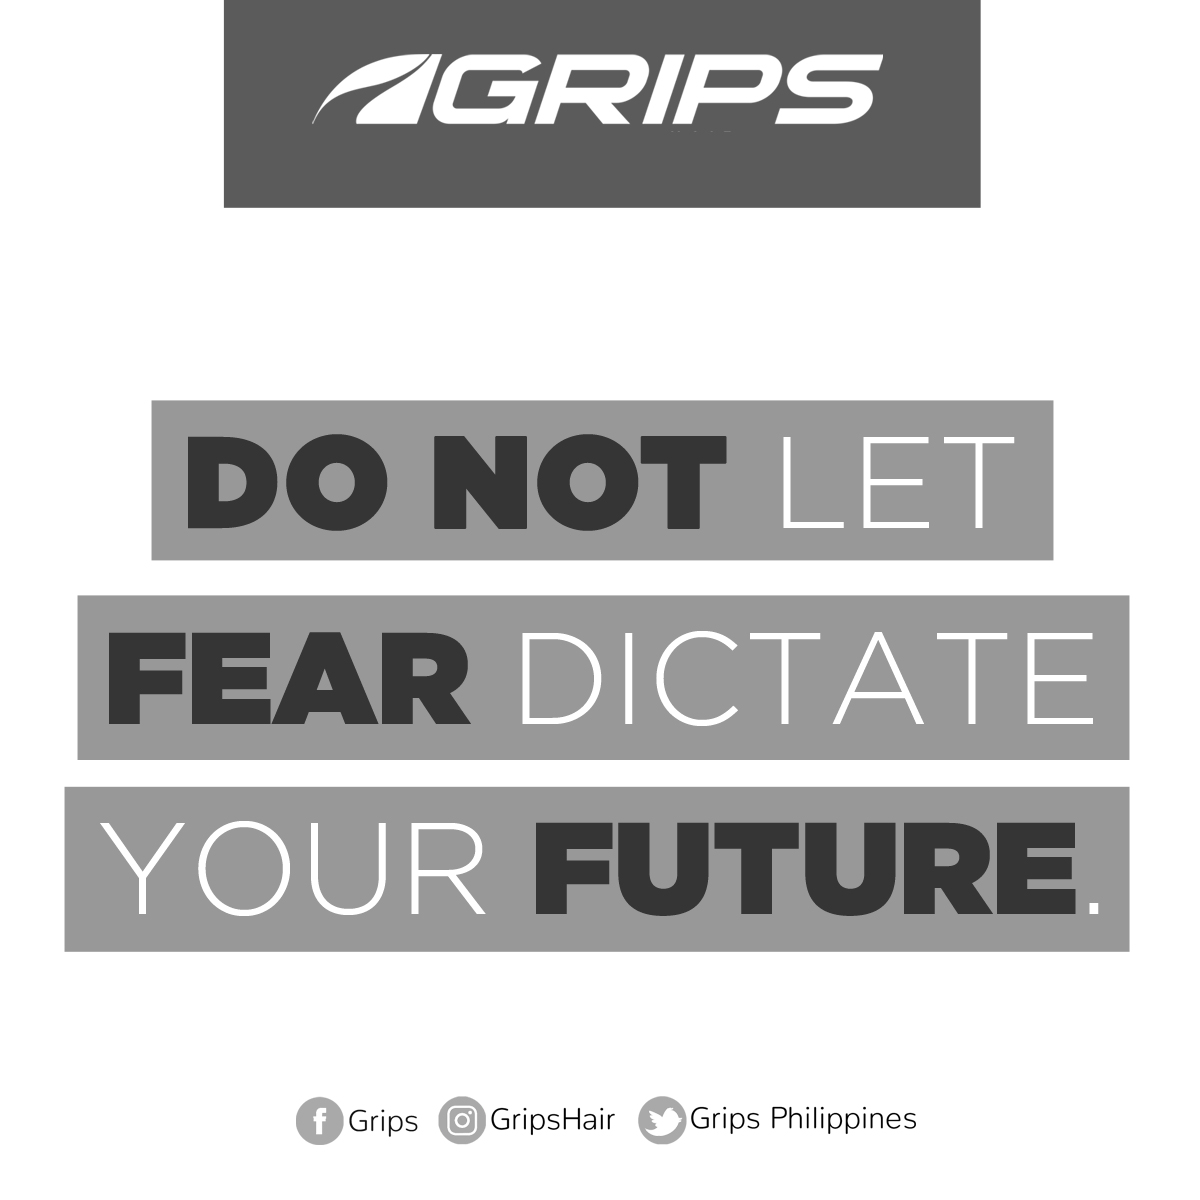 grips oct qoutes 3 copy grips wax